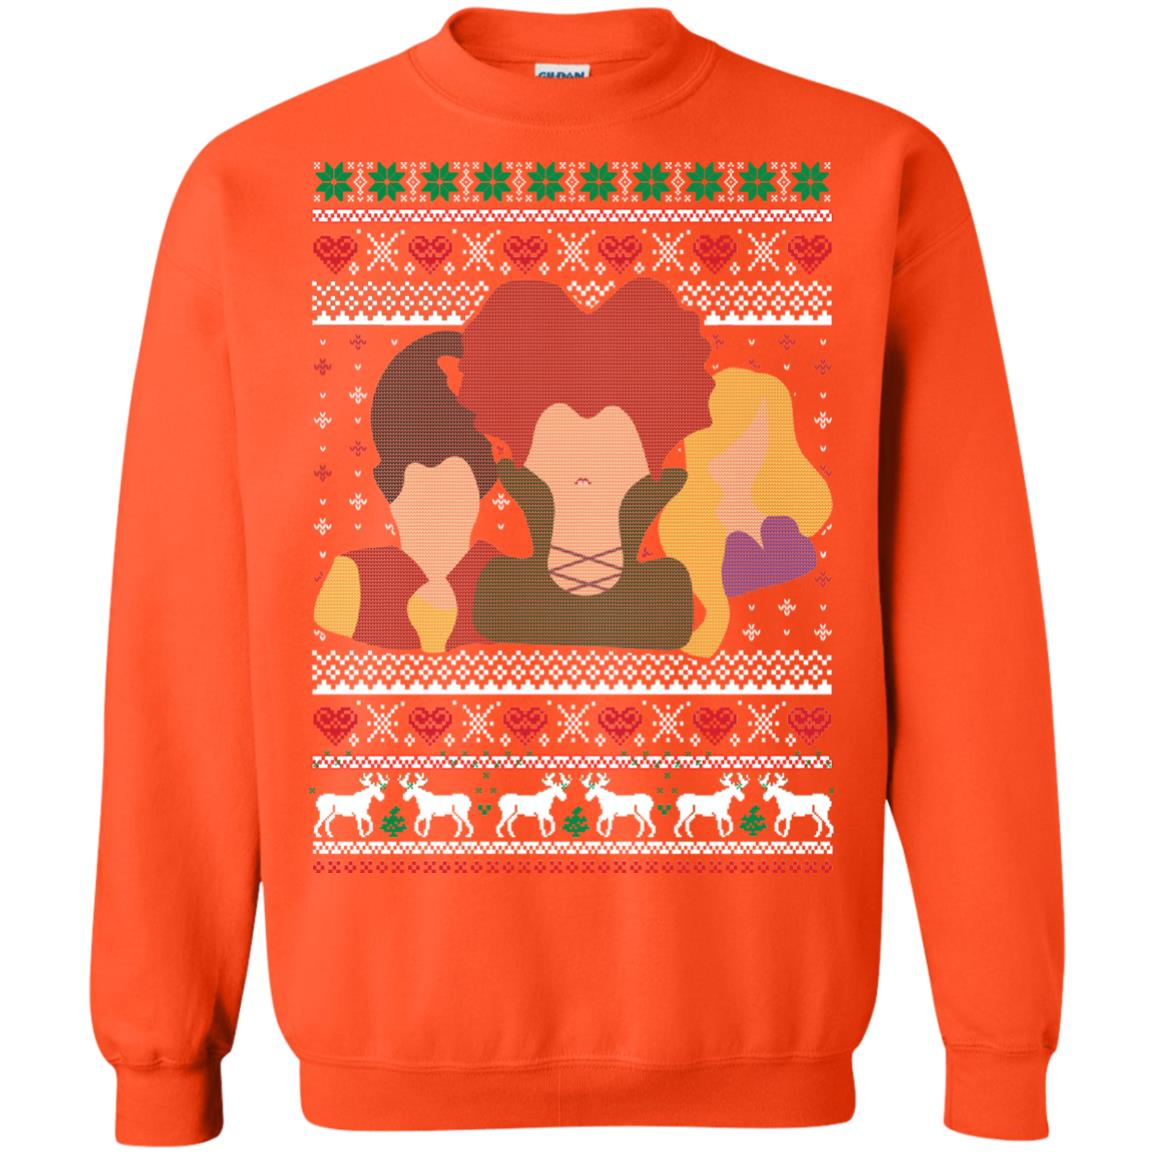 image 649px Hocus Pocus Ugly Christmas Sweater Shirt